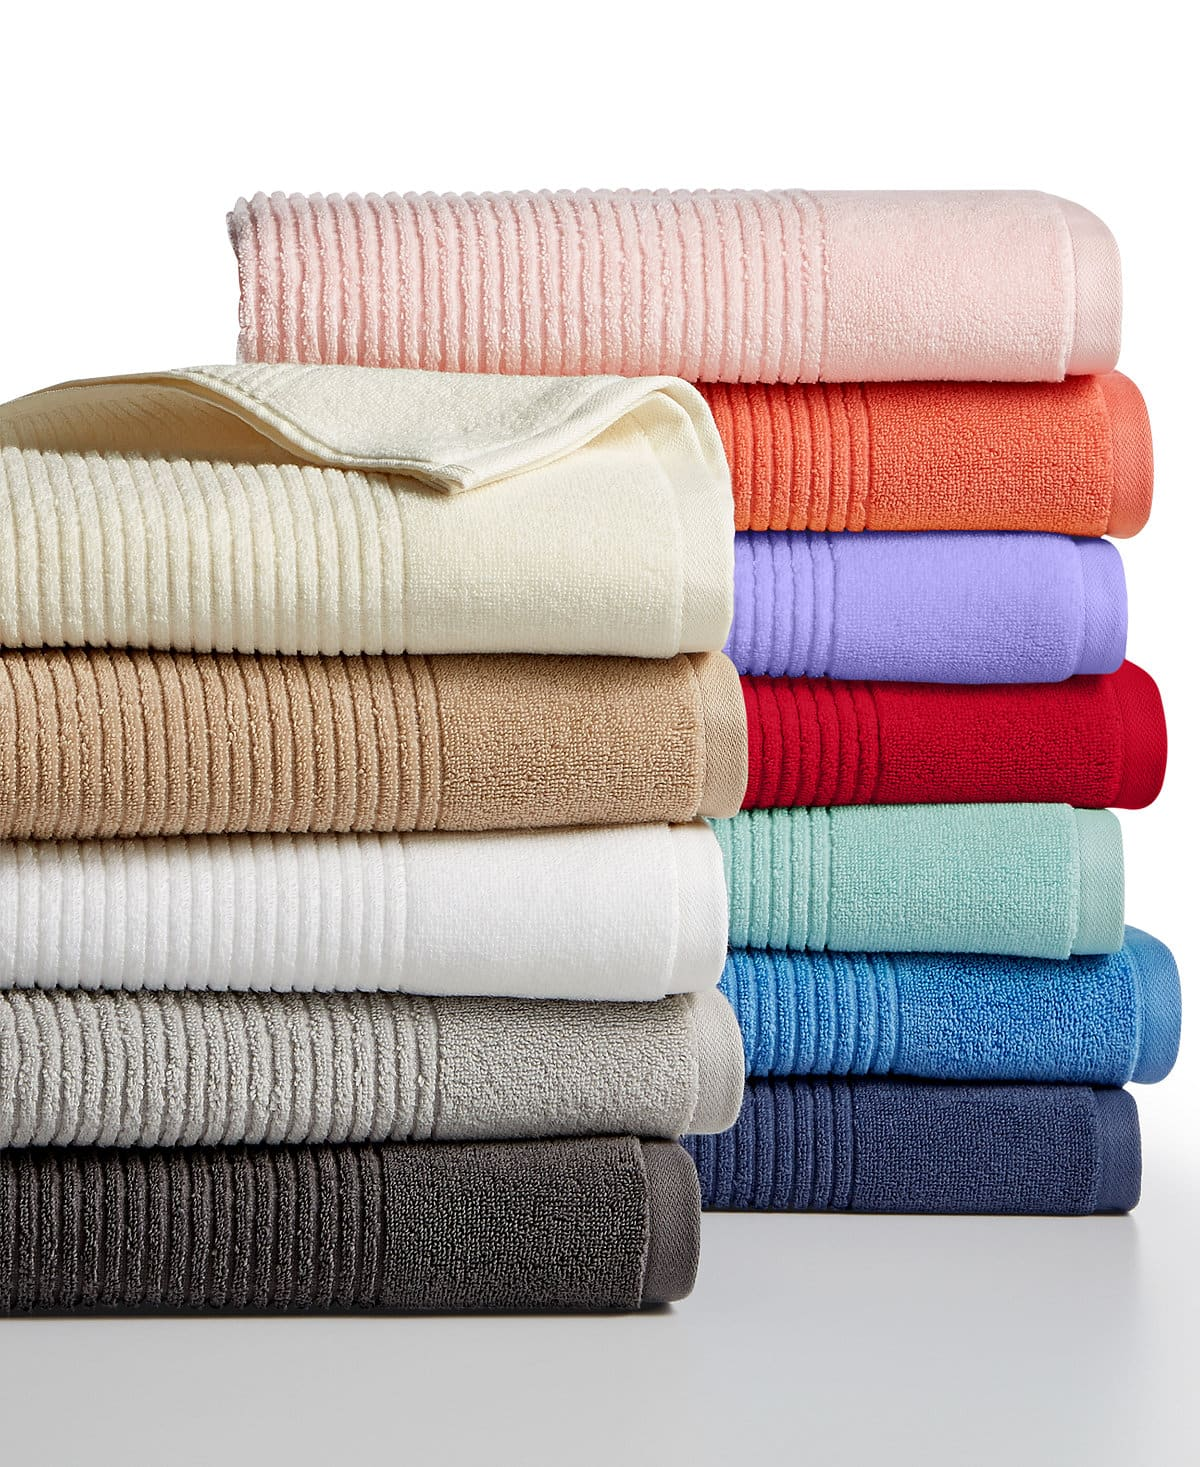 Martha Stewart Collection Quick Dry Reversible Towel Collection - $3.99/$5.99